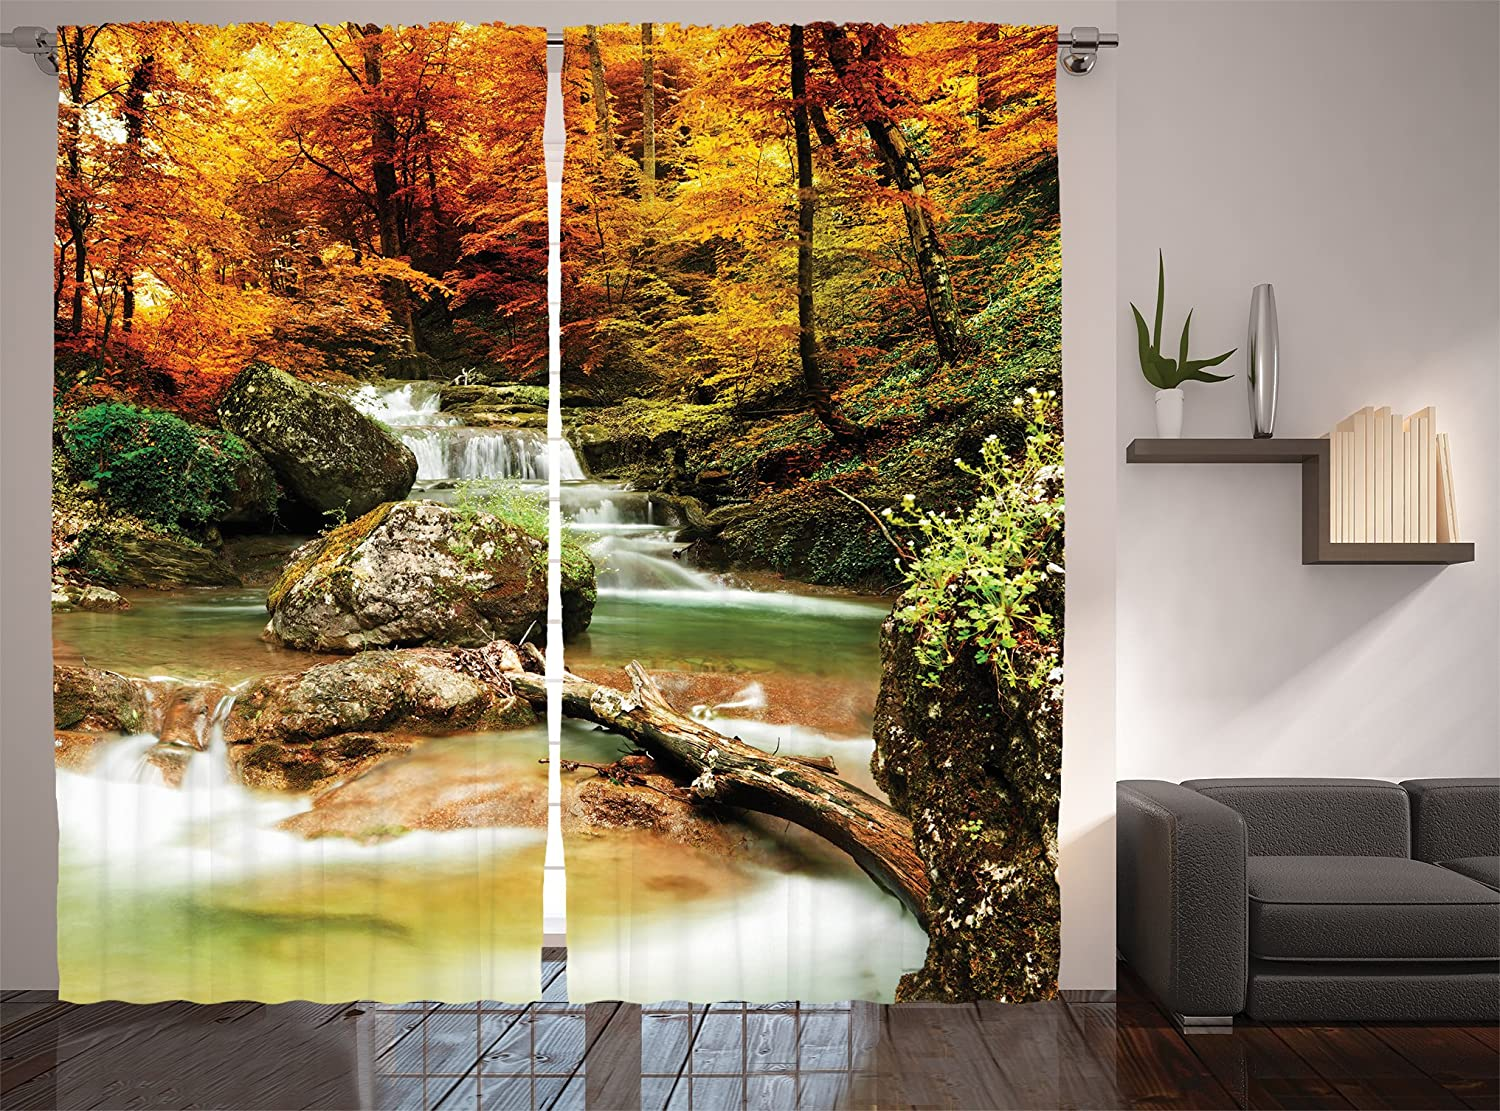 Ambesonne Waterfall Decor Collection, Autumn Creek Woods Trees and Foliage Rocks in Forest Picture, Window Treatments, Living Room Bedroom Curtain 2 Panels Set, 108 X 84 Inches, orange Green Beige